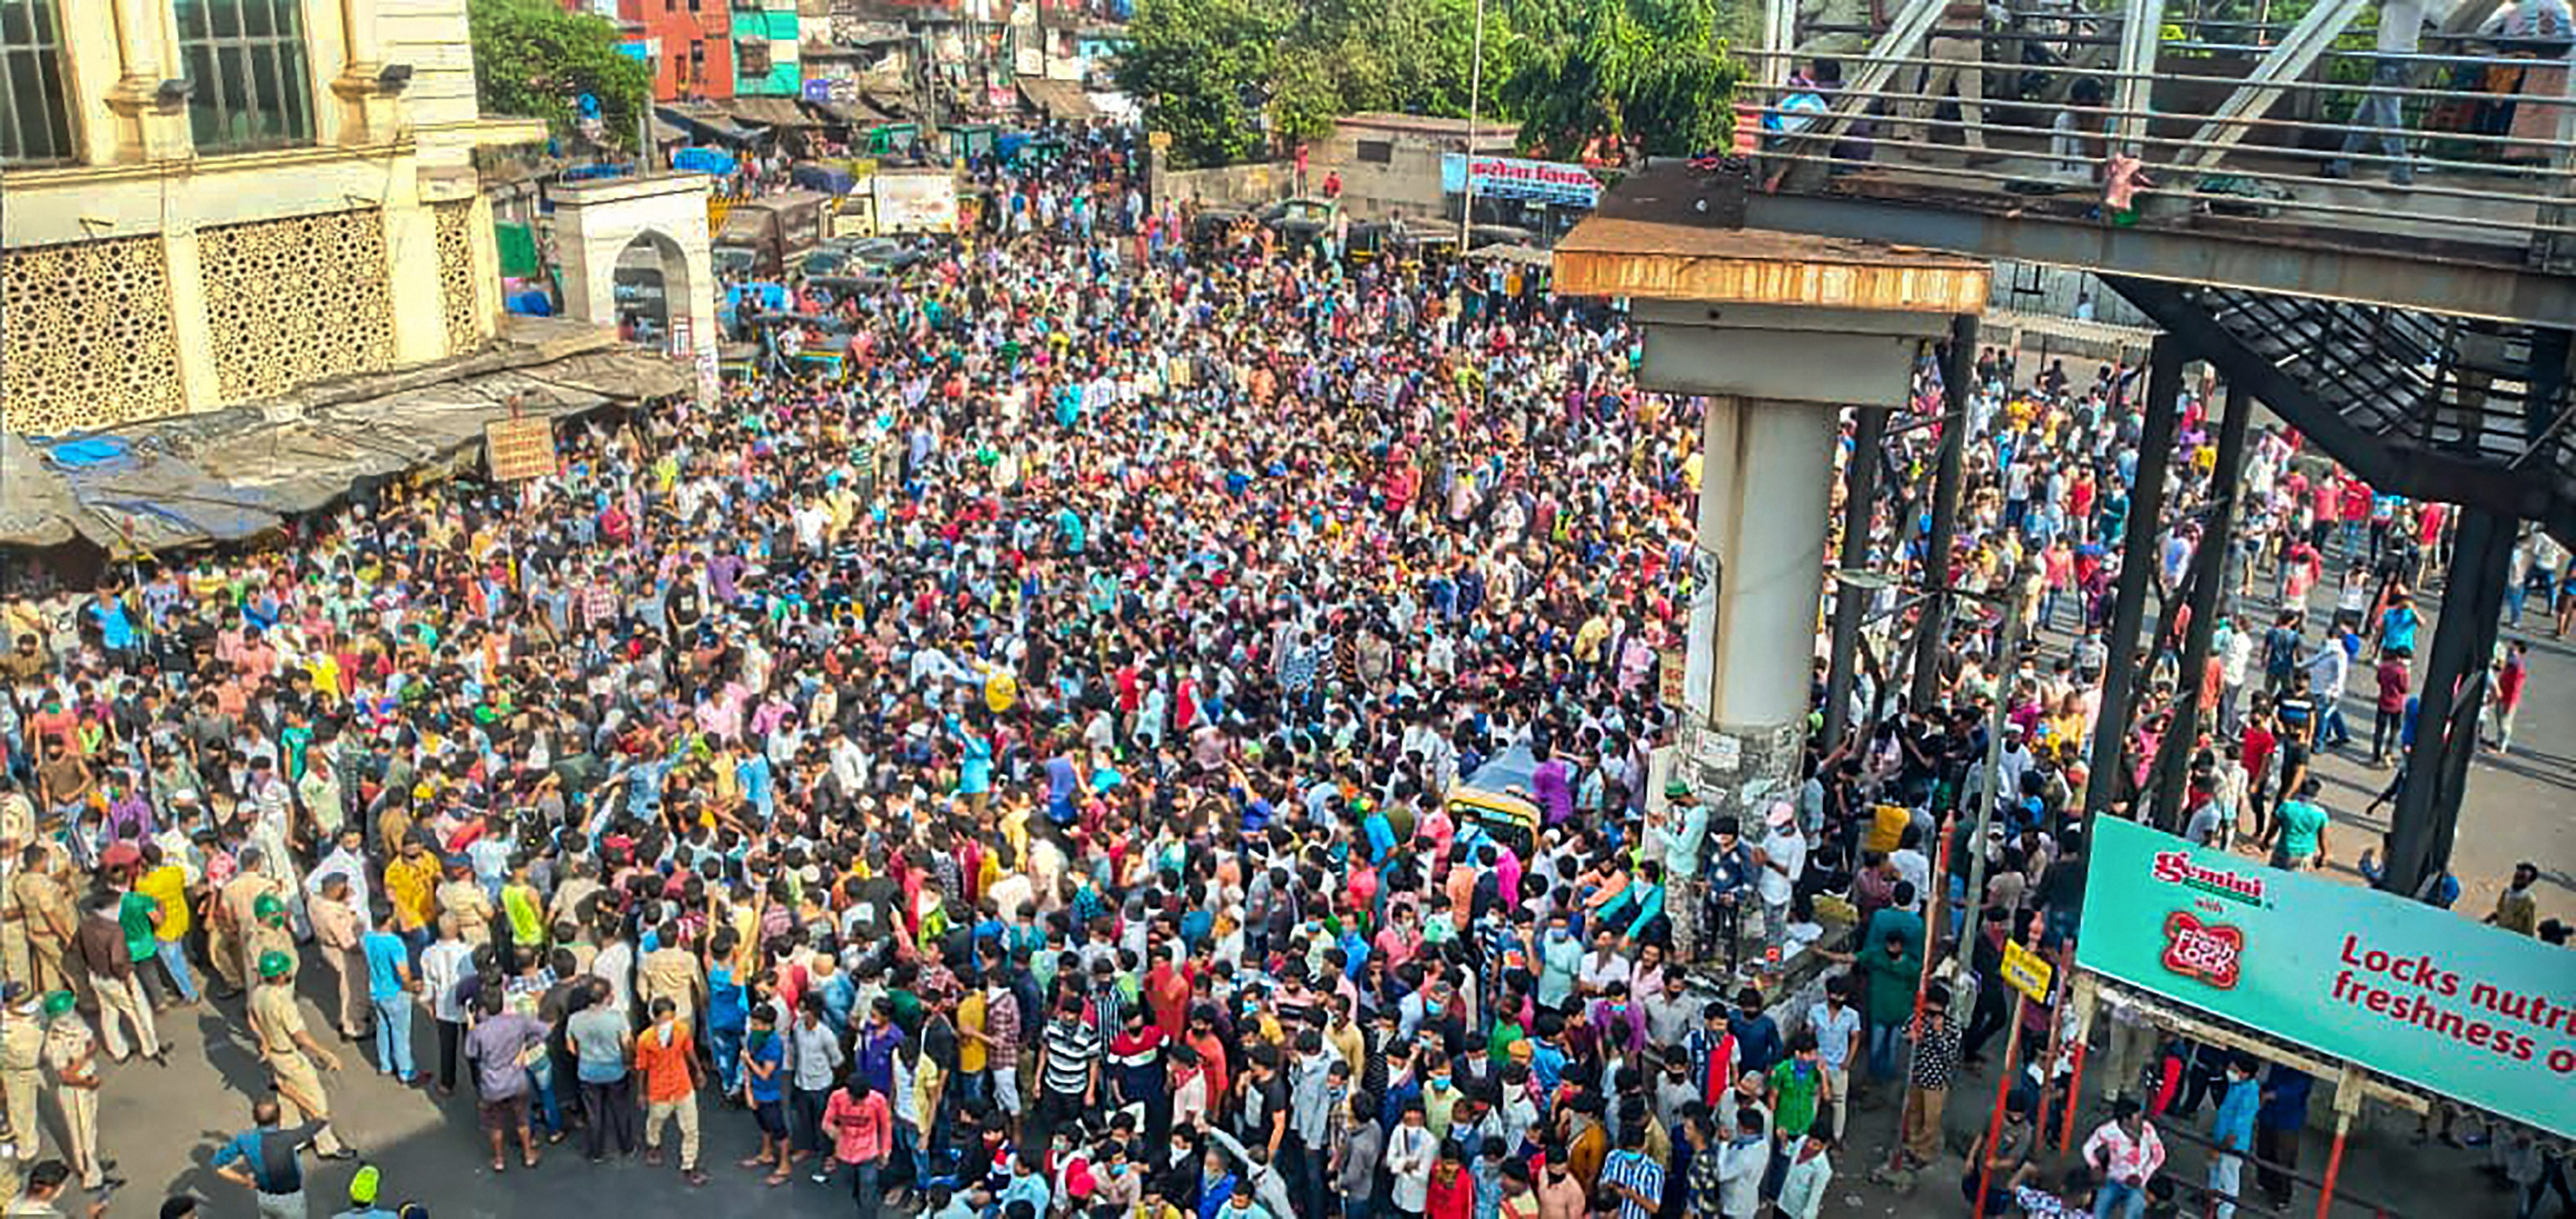 Migrant workers gather outside Bandra West Railway Station as they defy lockdown norms and request to leave for their native places after PM Narendra Modi announced the extension of nationwide lockdown till May 3 in the wake of coronavirus pandemic, in Mumbai, Tuesday, April 14, 2020.